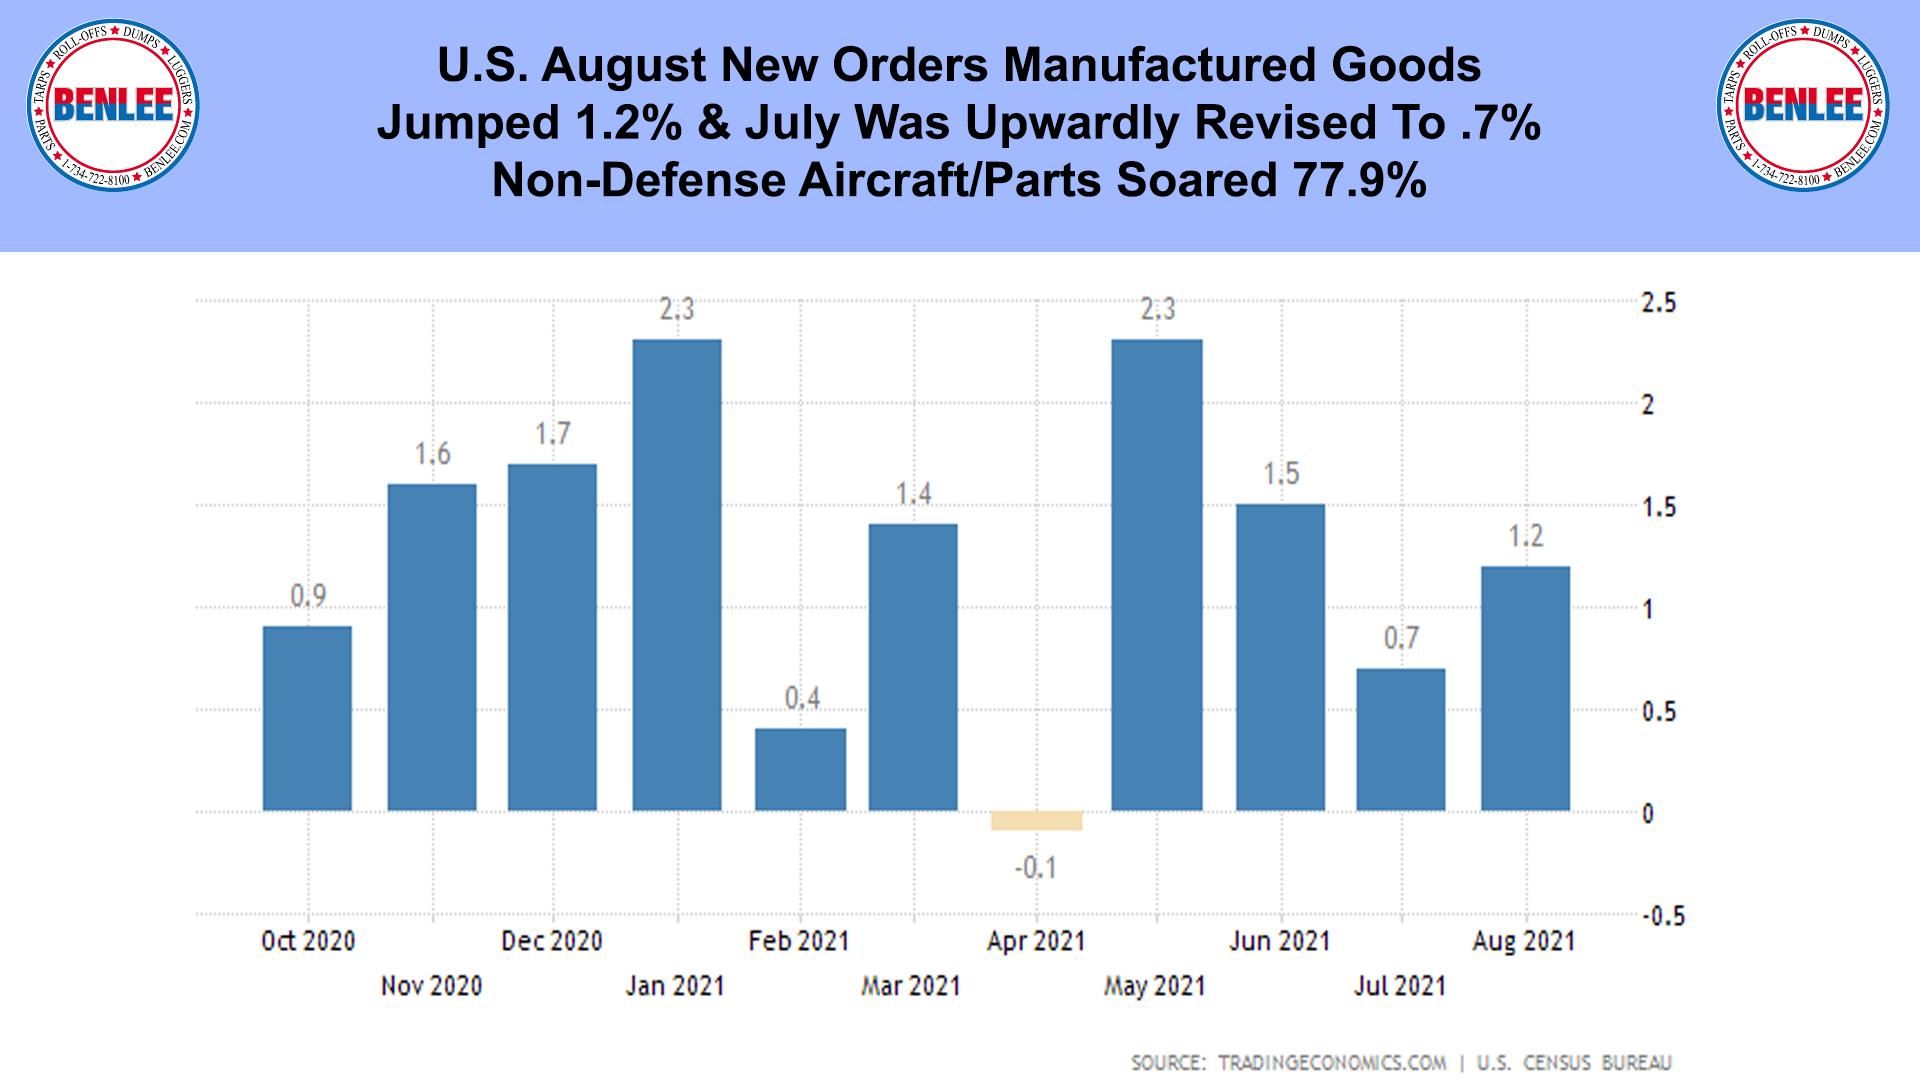 U.S. August New Orders Manufactured Goods